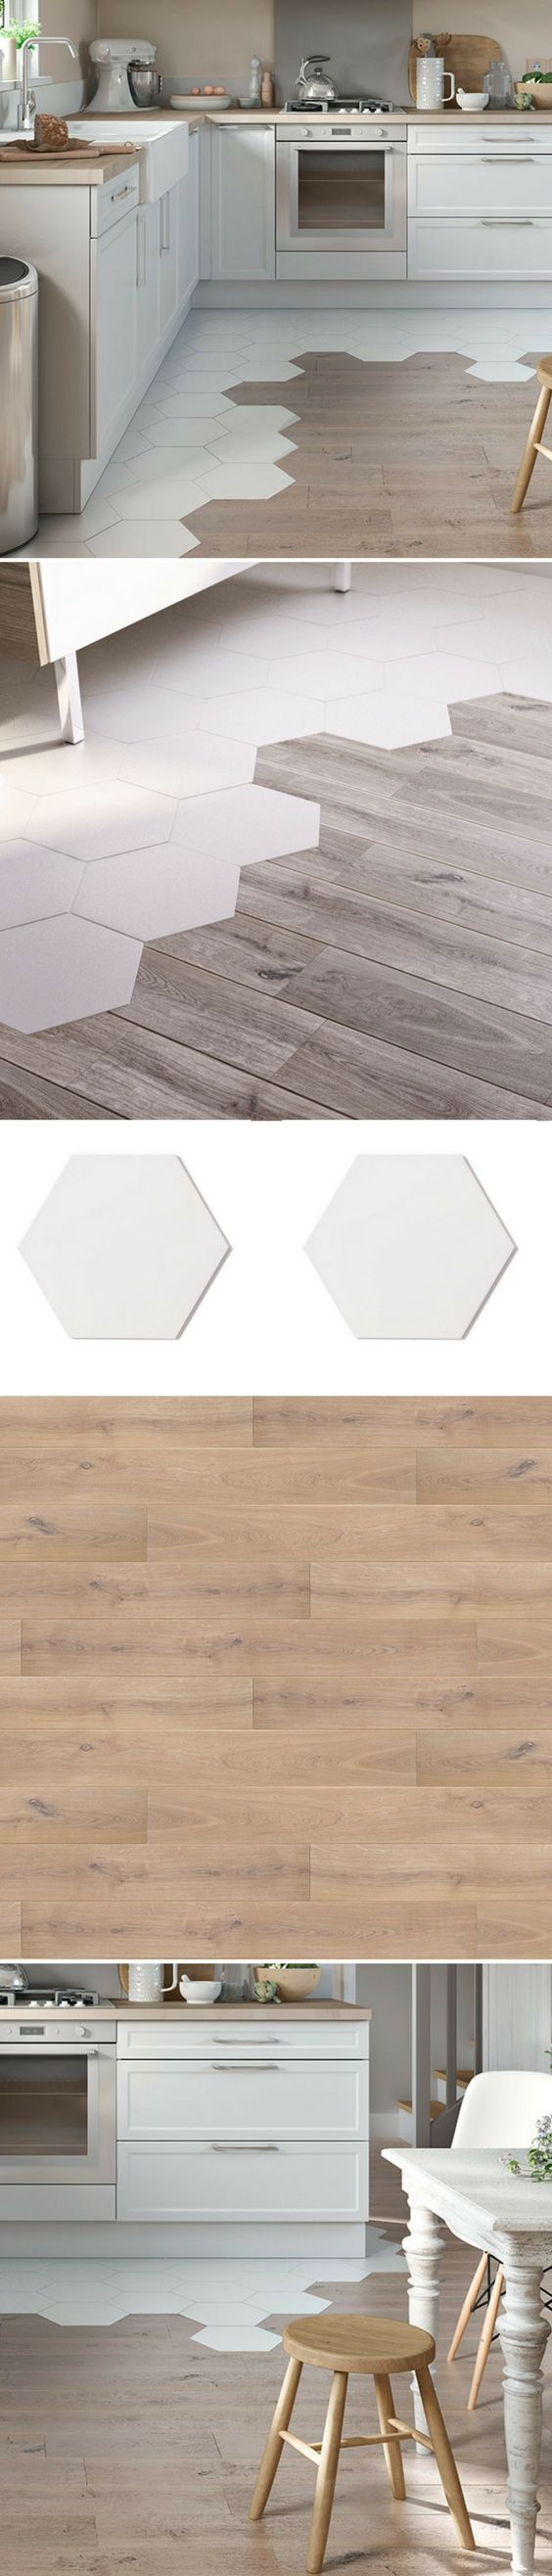 Best 25 wooden floor tiles ideas on pinterest barcelona points connecting two types of flooring tendance sol cuisine le mix parquet carrelage dailygadgetfo Images